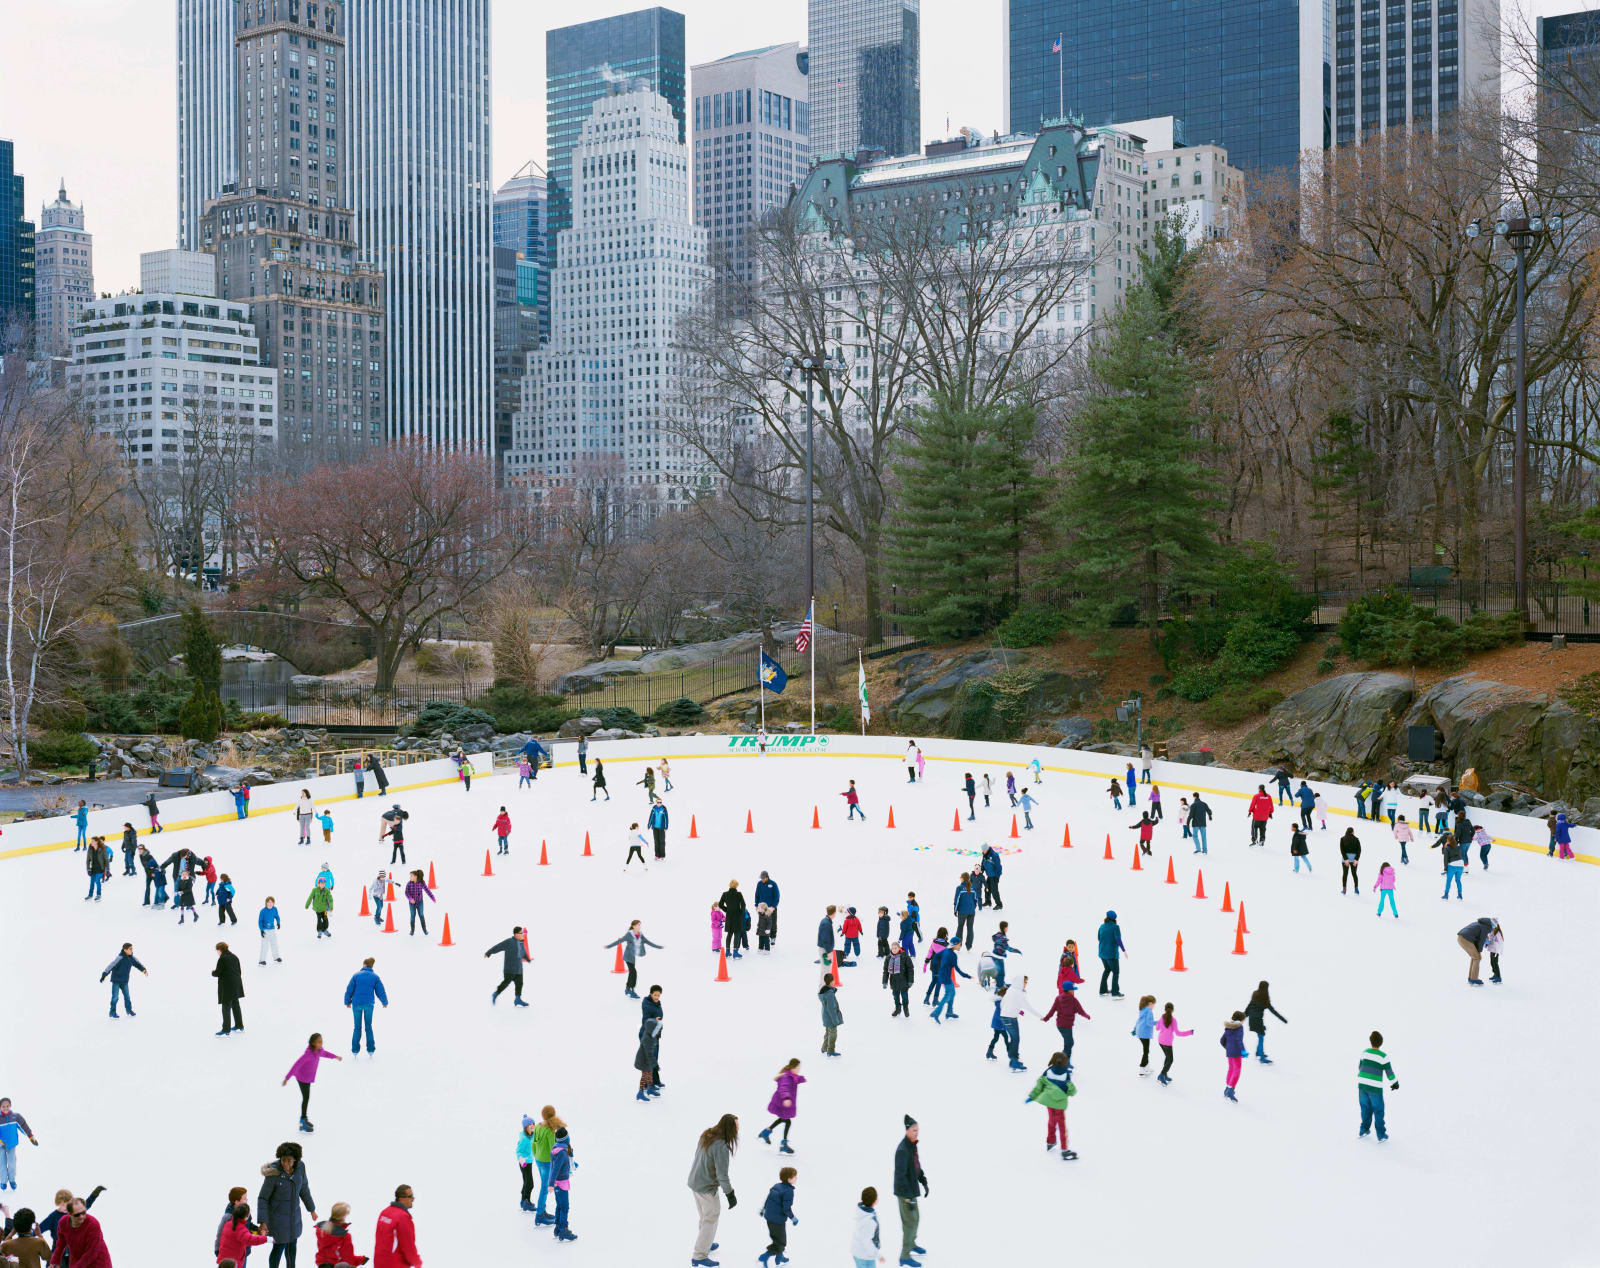 Skaters at Wollman Rink in Central Park, New York City, by Massimo Vitali